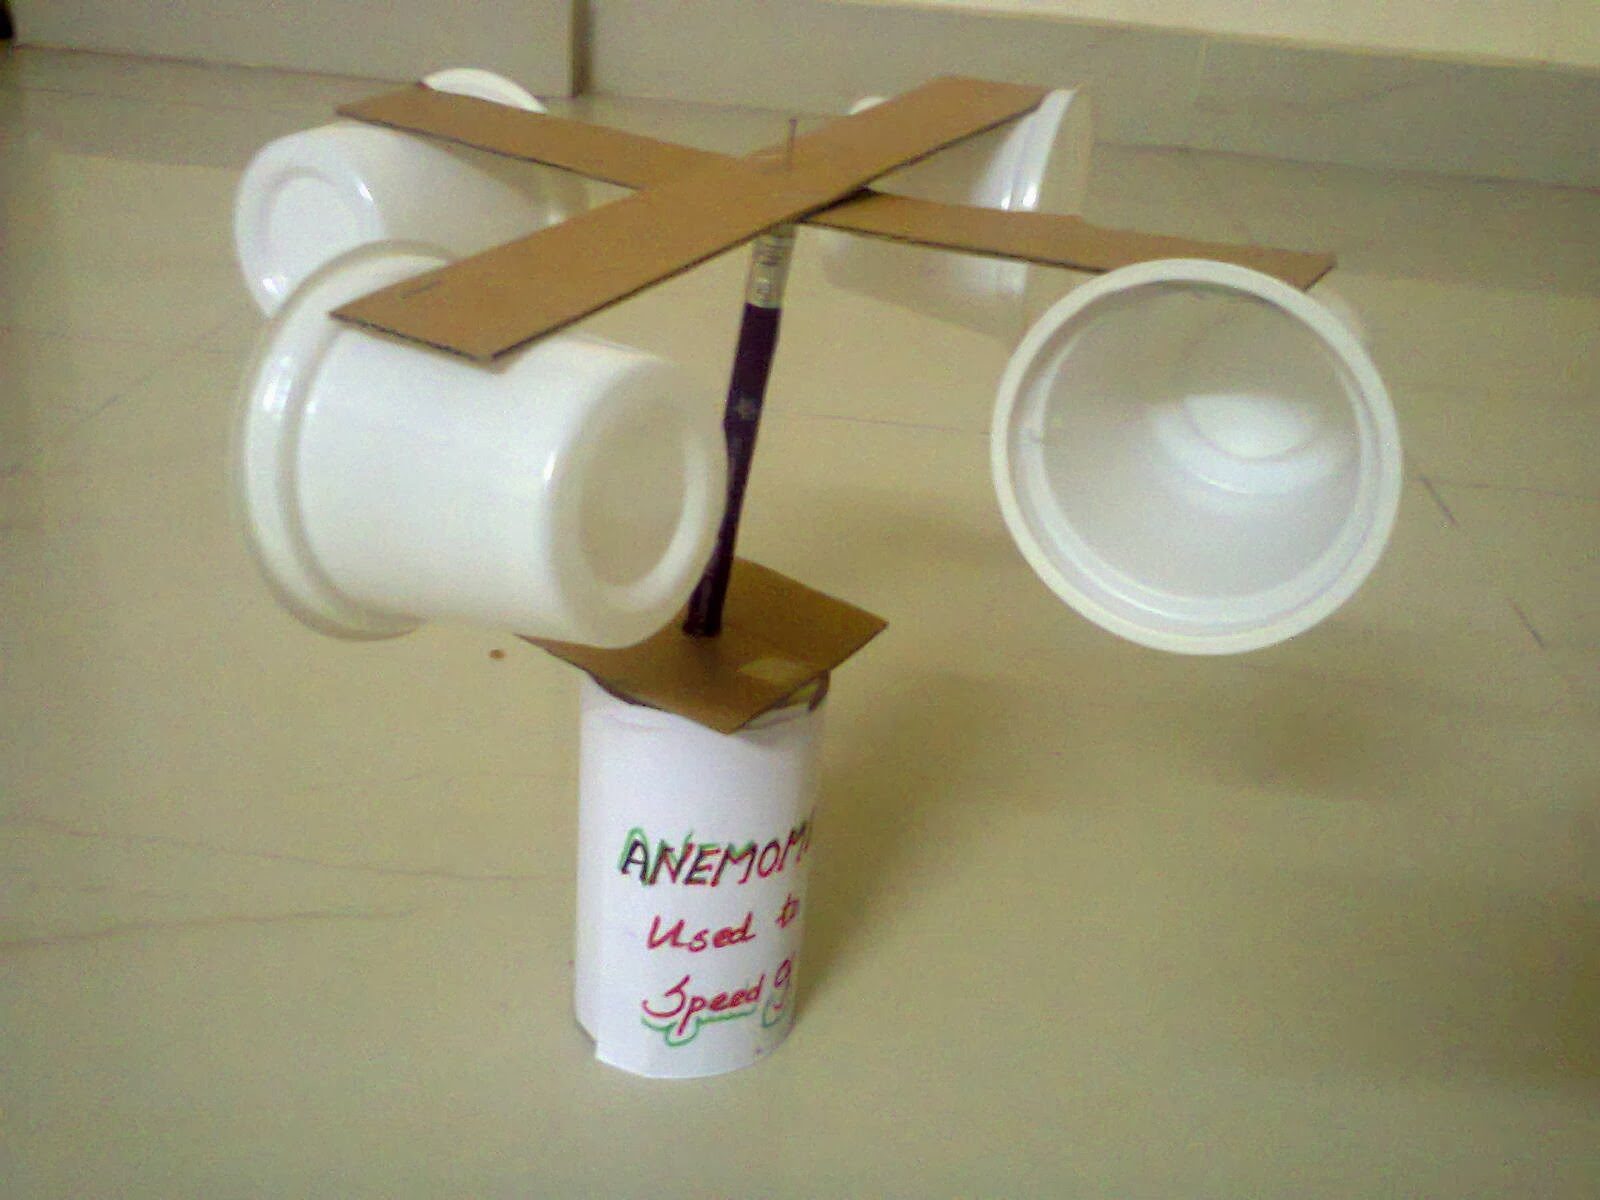 Creative of rainy anemometer for Waste out of best models